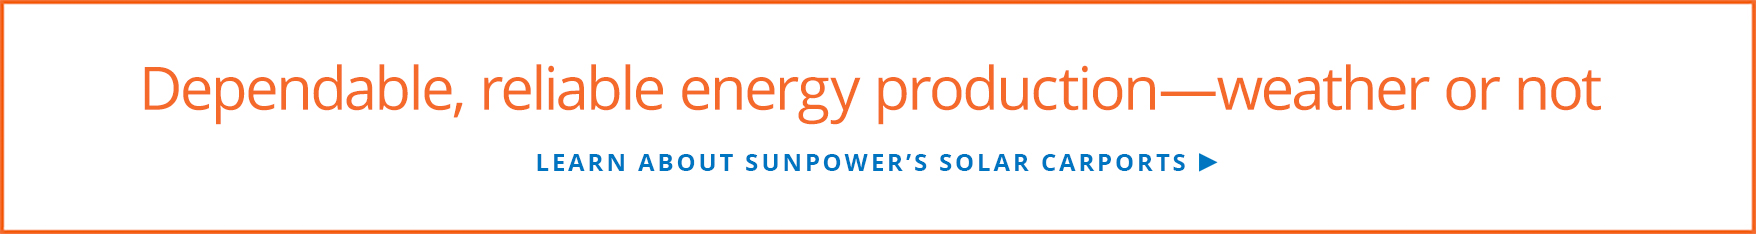 Learn about SunPower's solar carports